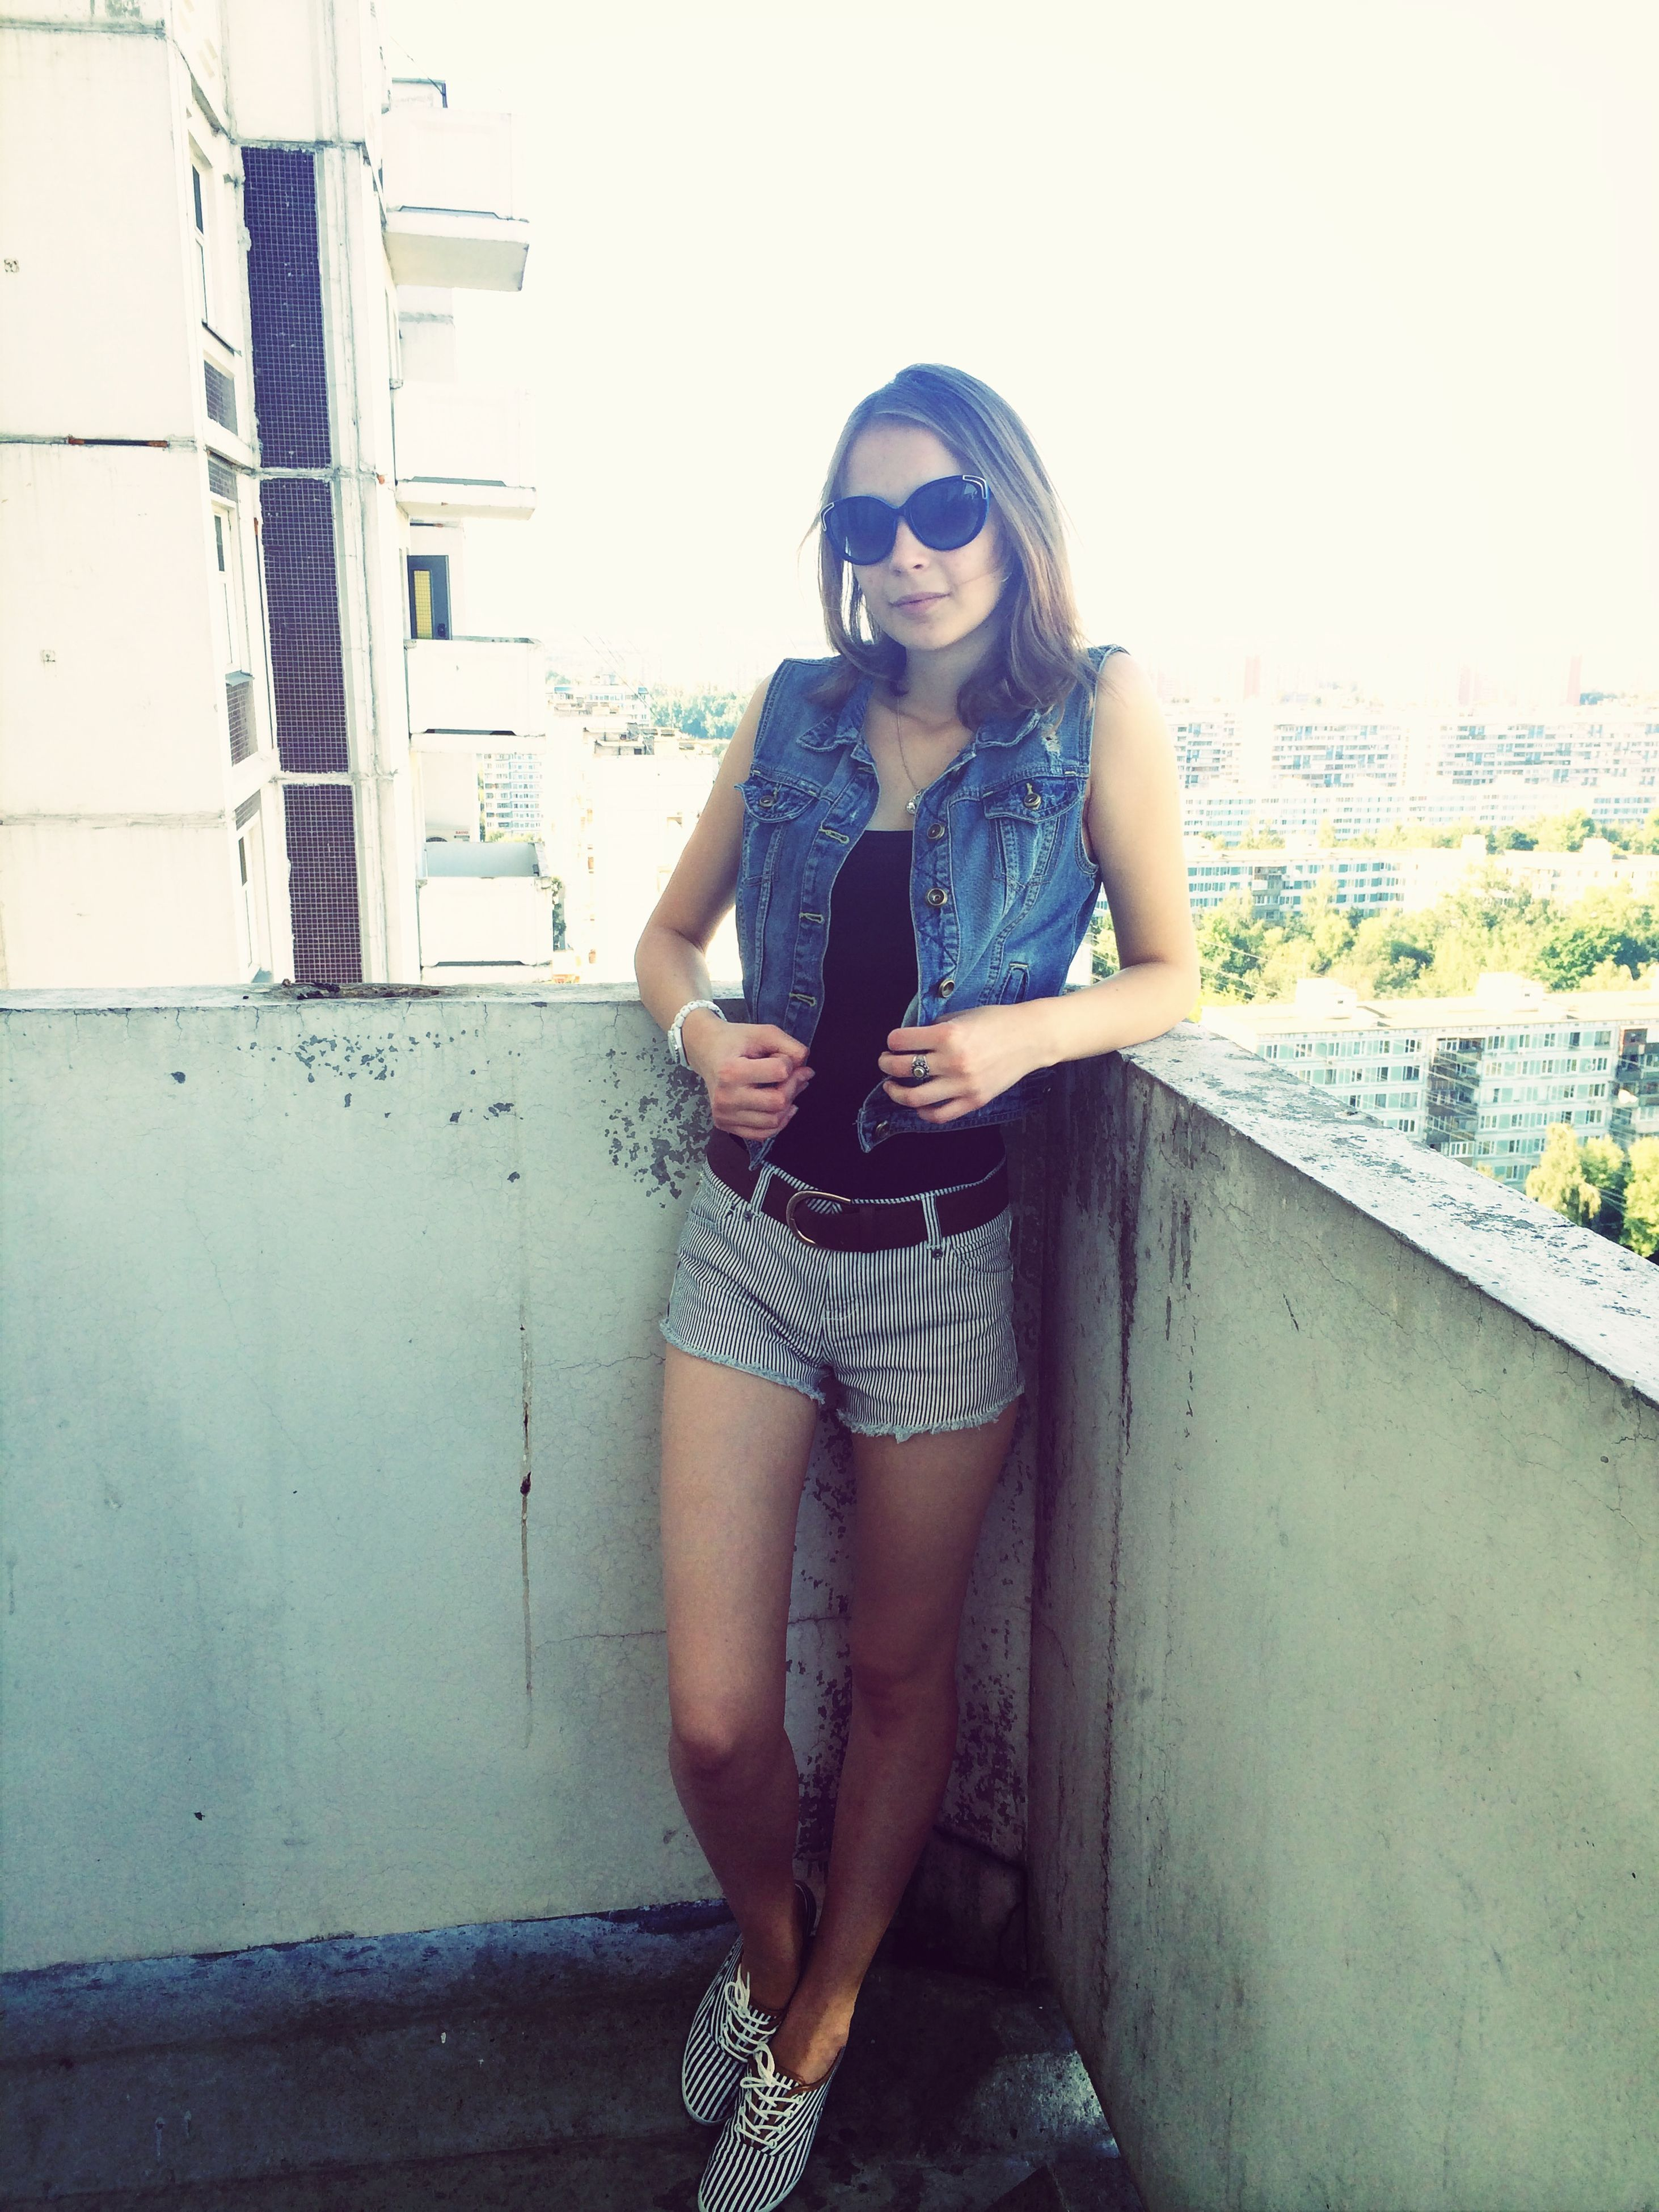 young adult, lifestyles, young women, casual clothing, leisure activity, person, full length, sunglasses, standing, built structure, architecture, building exterior, sitting, portrait, front view, three quarter length, looking at camera